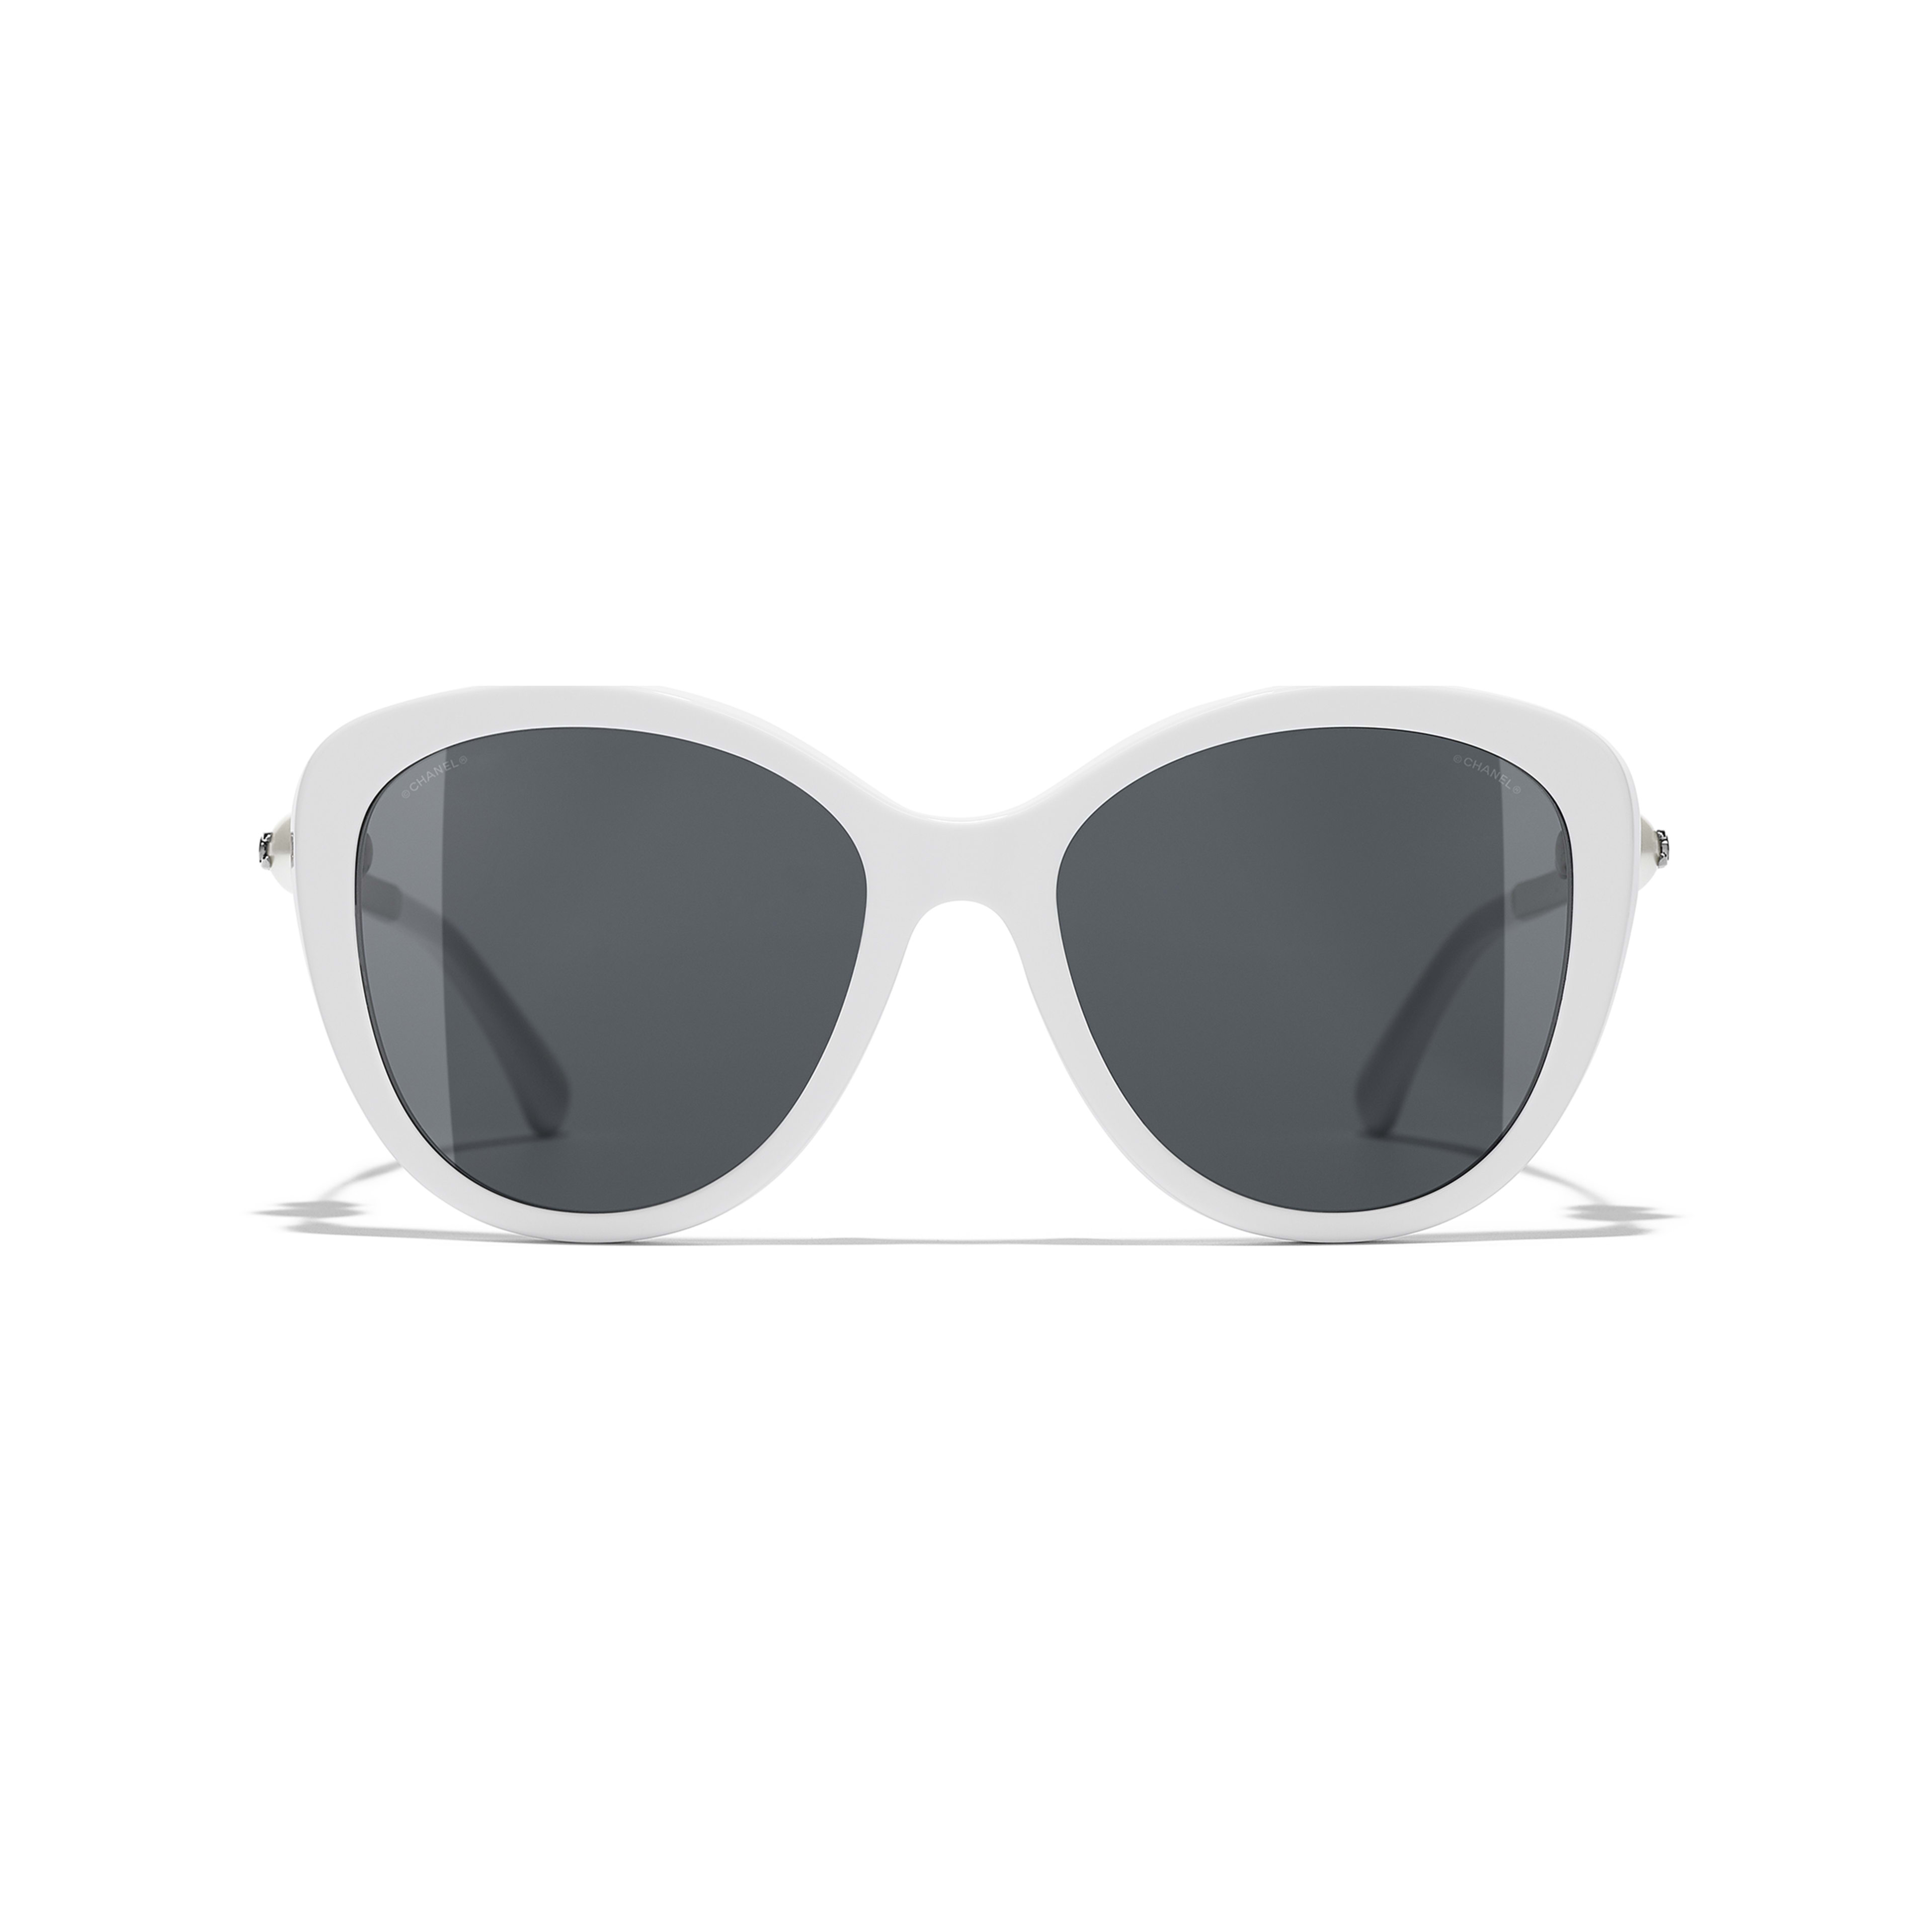 Butterfly Sunglasses - White - Acetate & Imitation Pearls - Alternative view - see full sized version